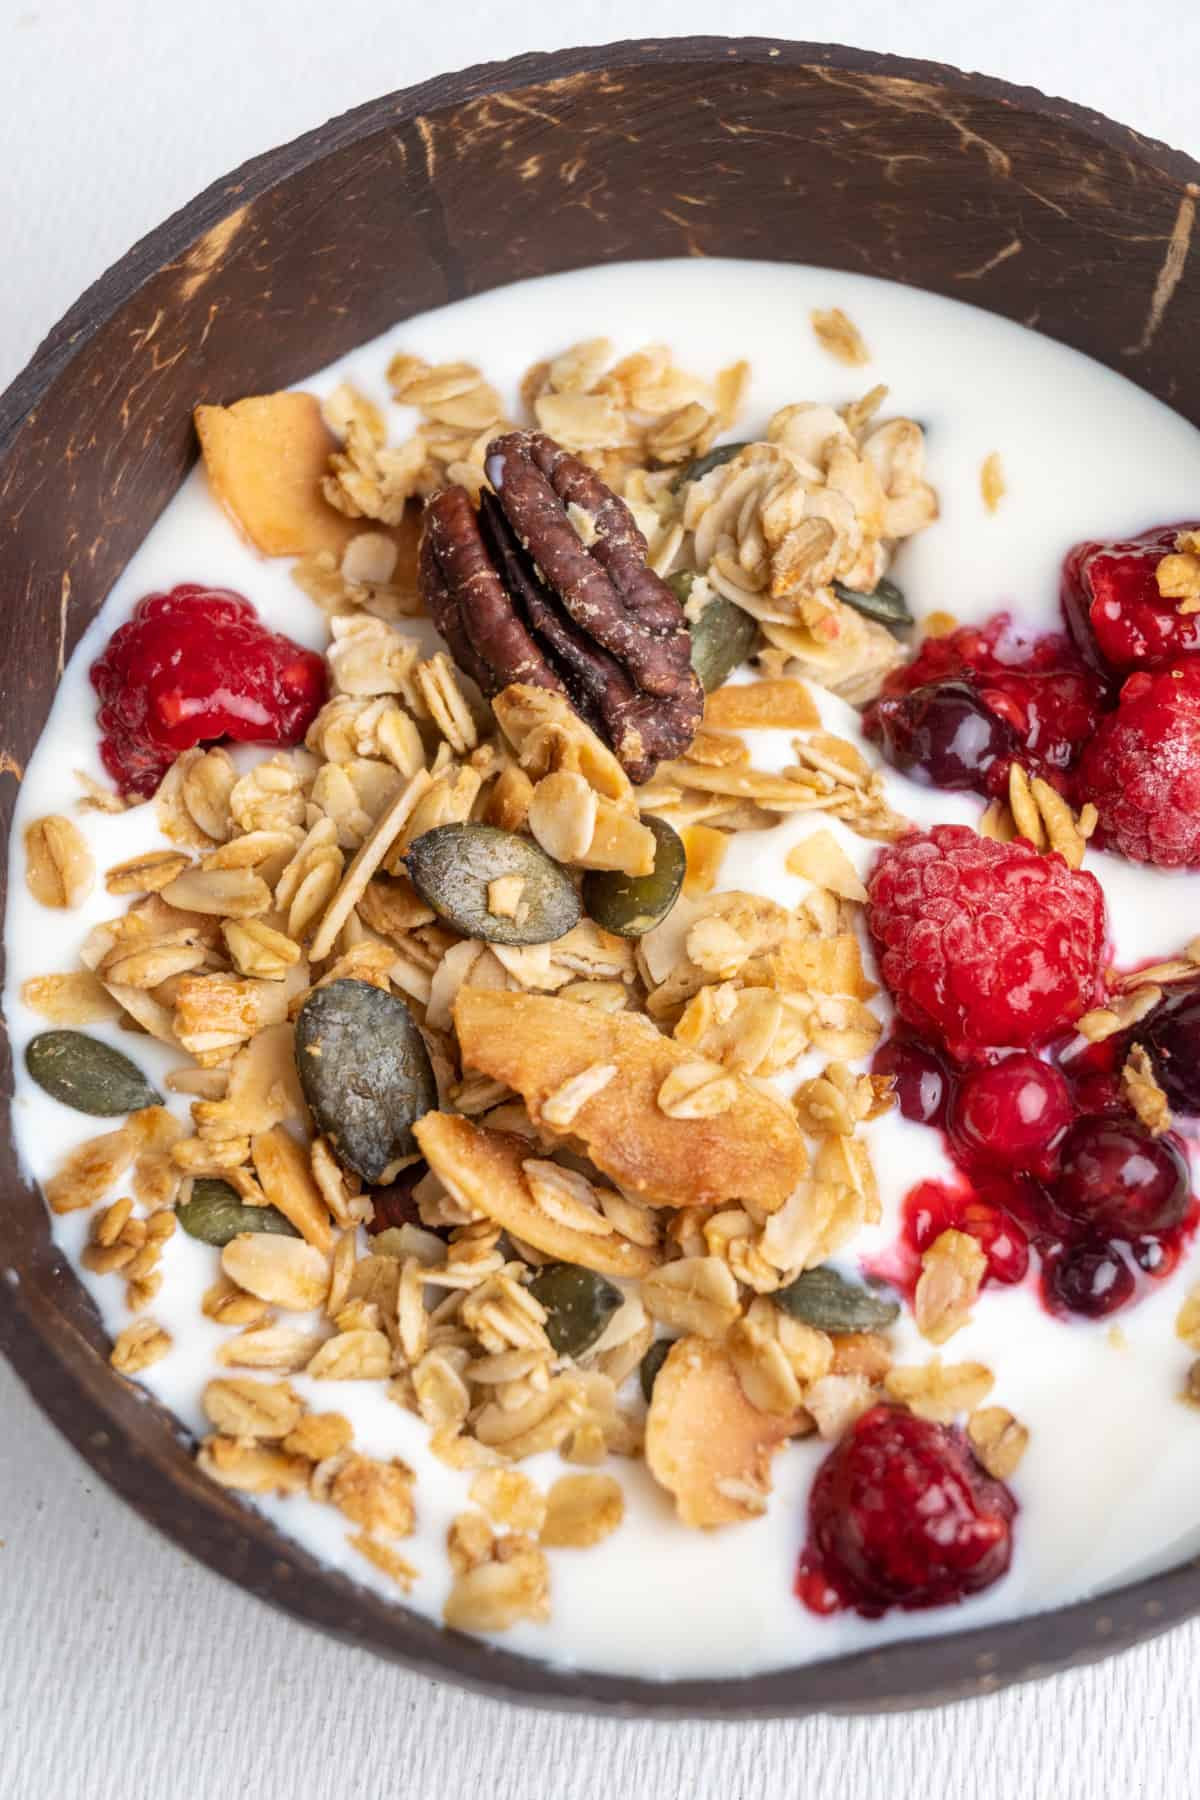 Granola and fresh red fruit on yoghurt in a coconut bowl.